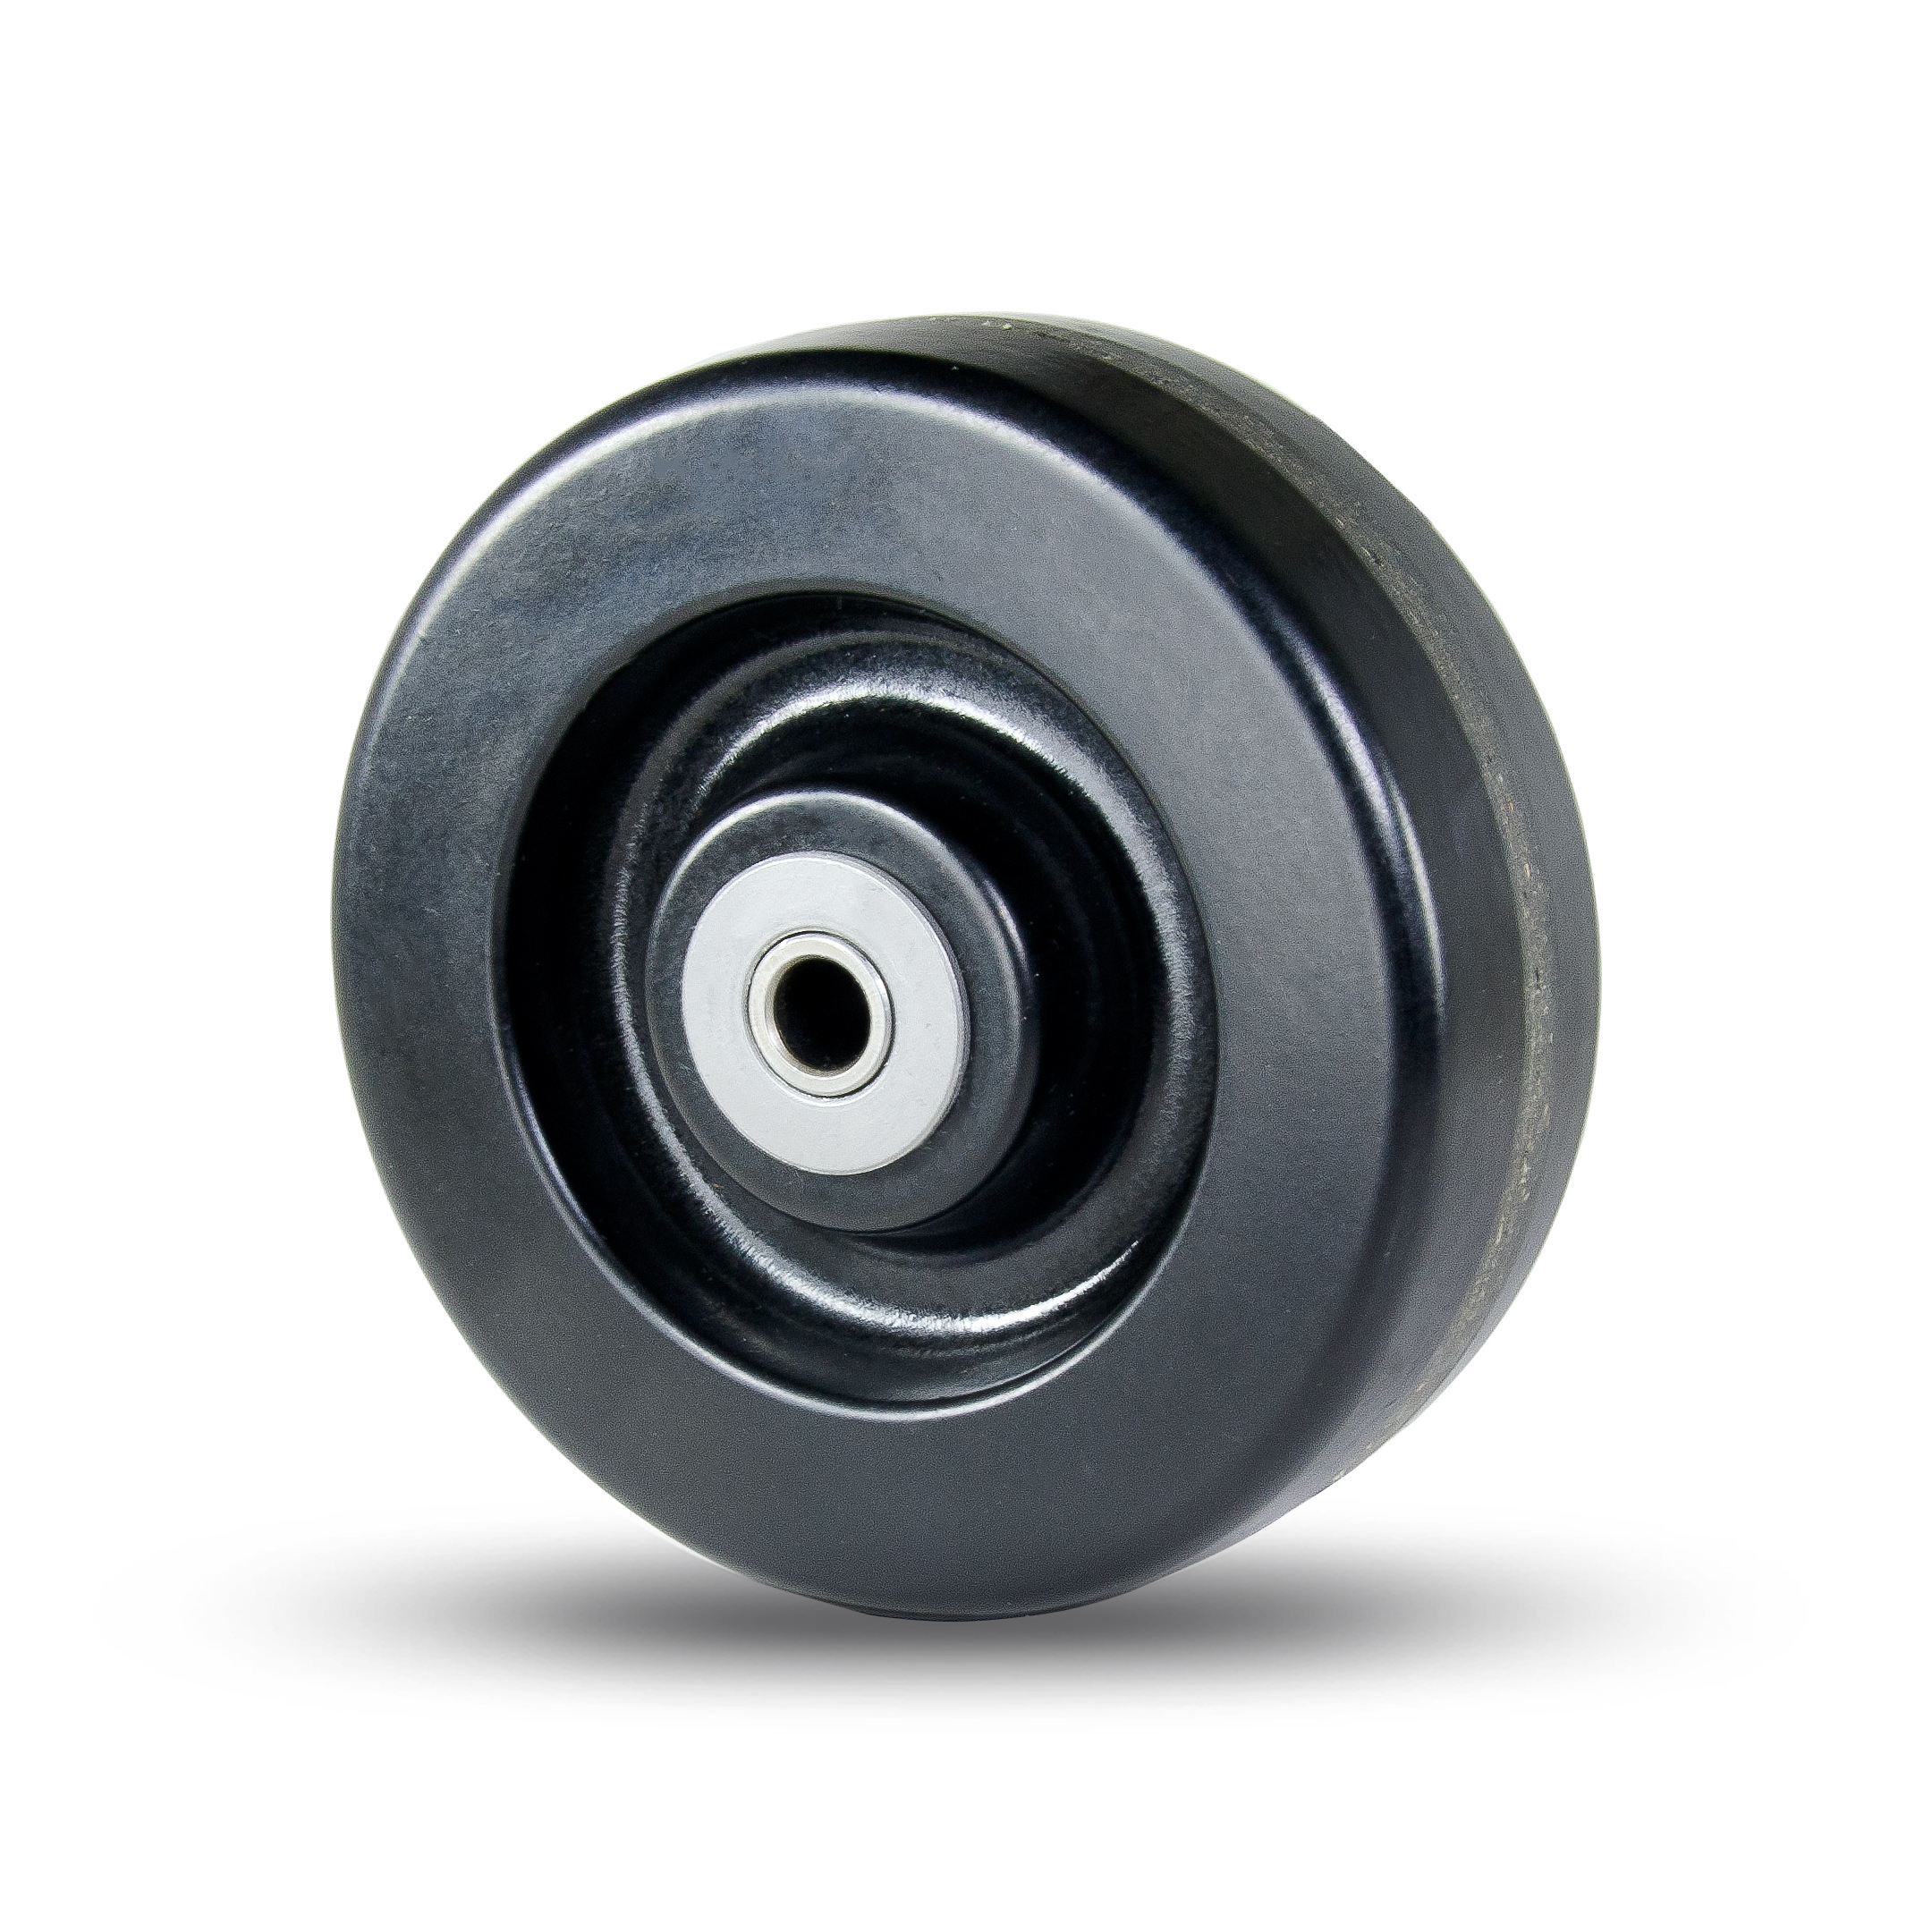 Phenolic caster wheel